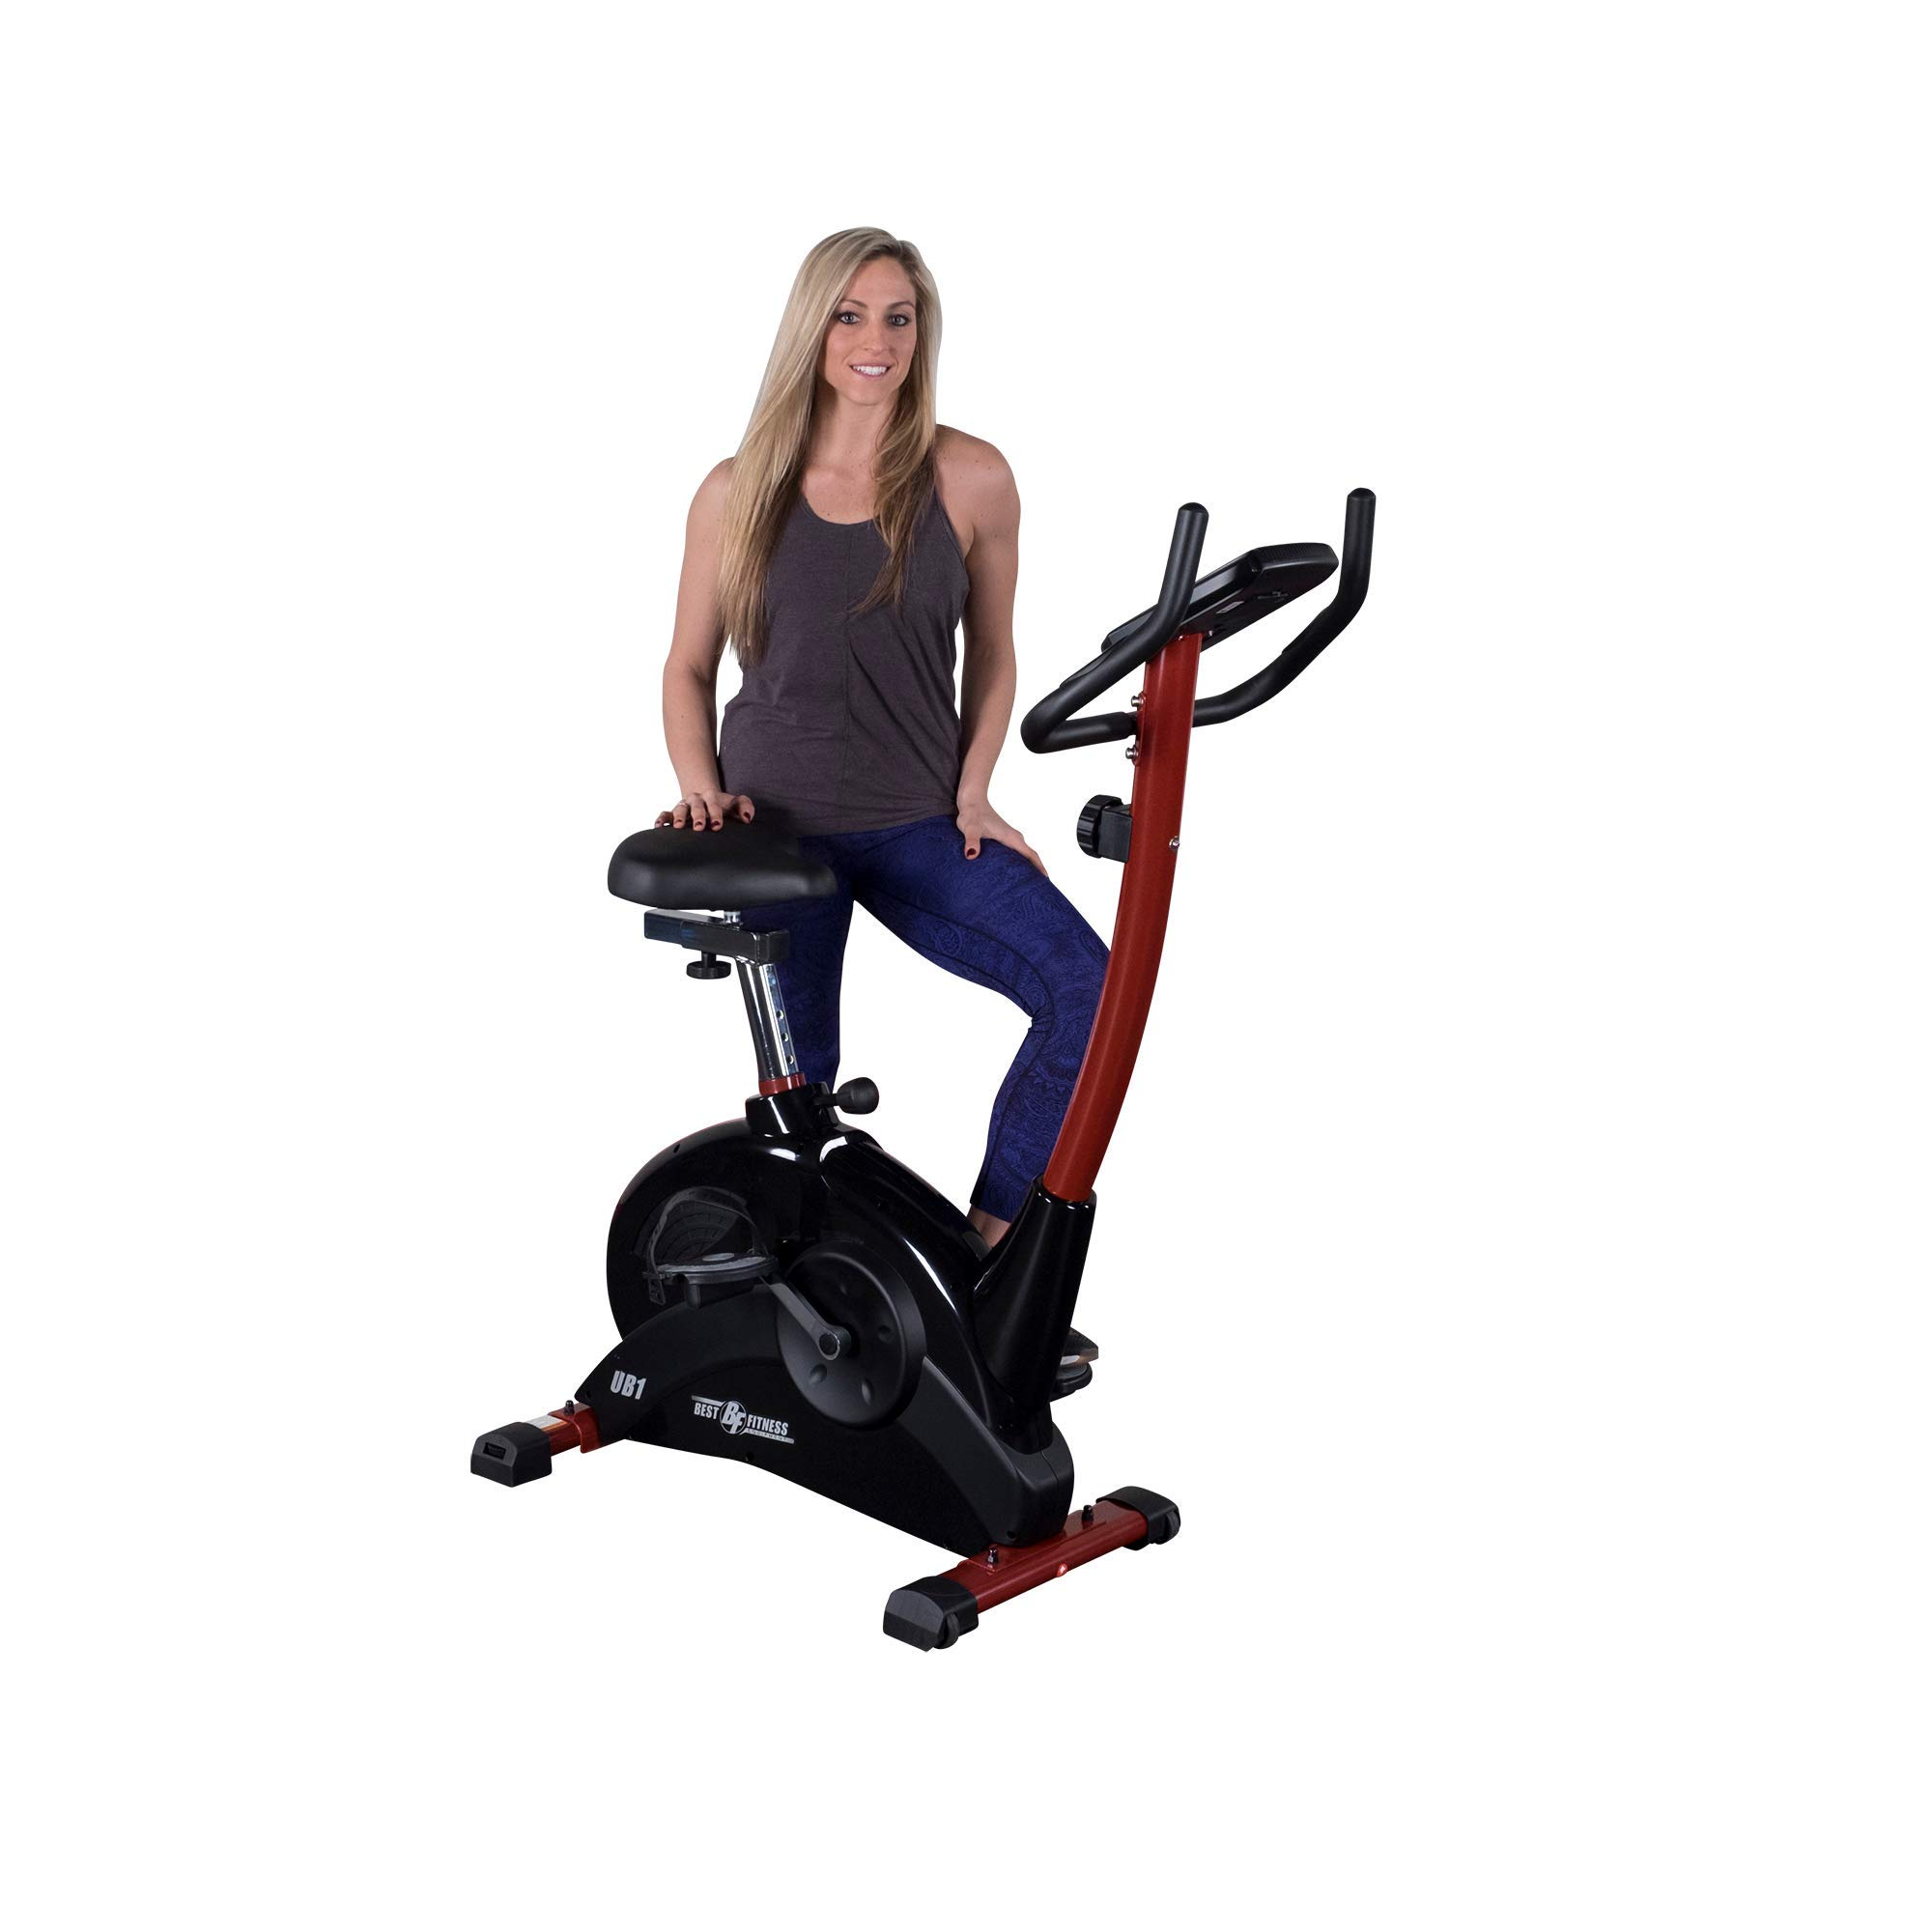 Best Fitness bicicleta estática vertical - BFUB1, Negro: Amazon.es ...